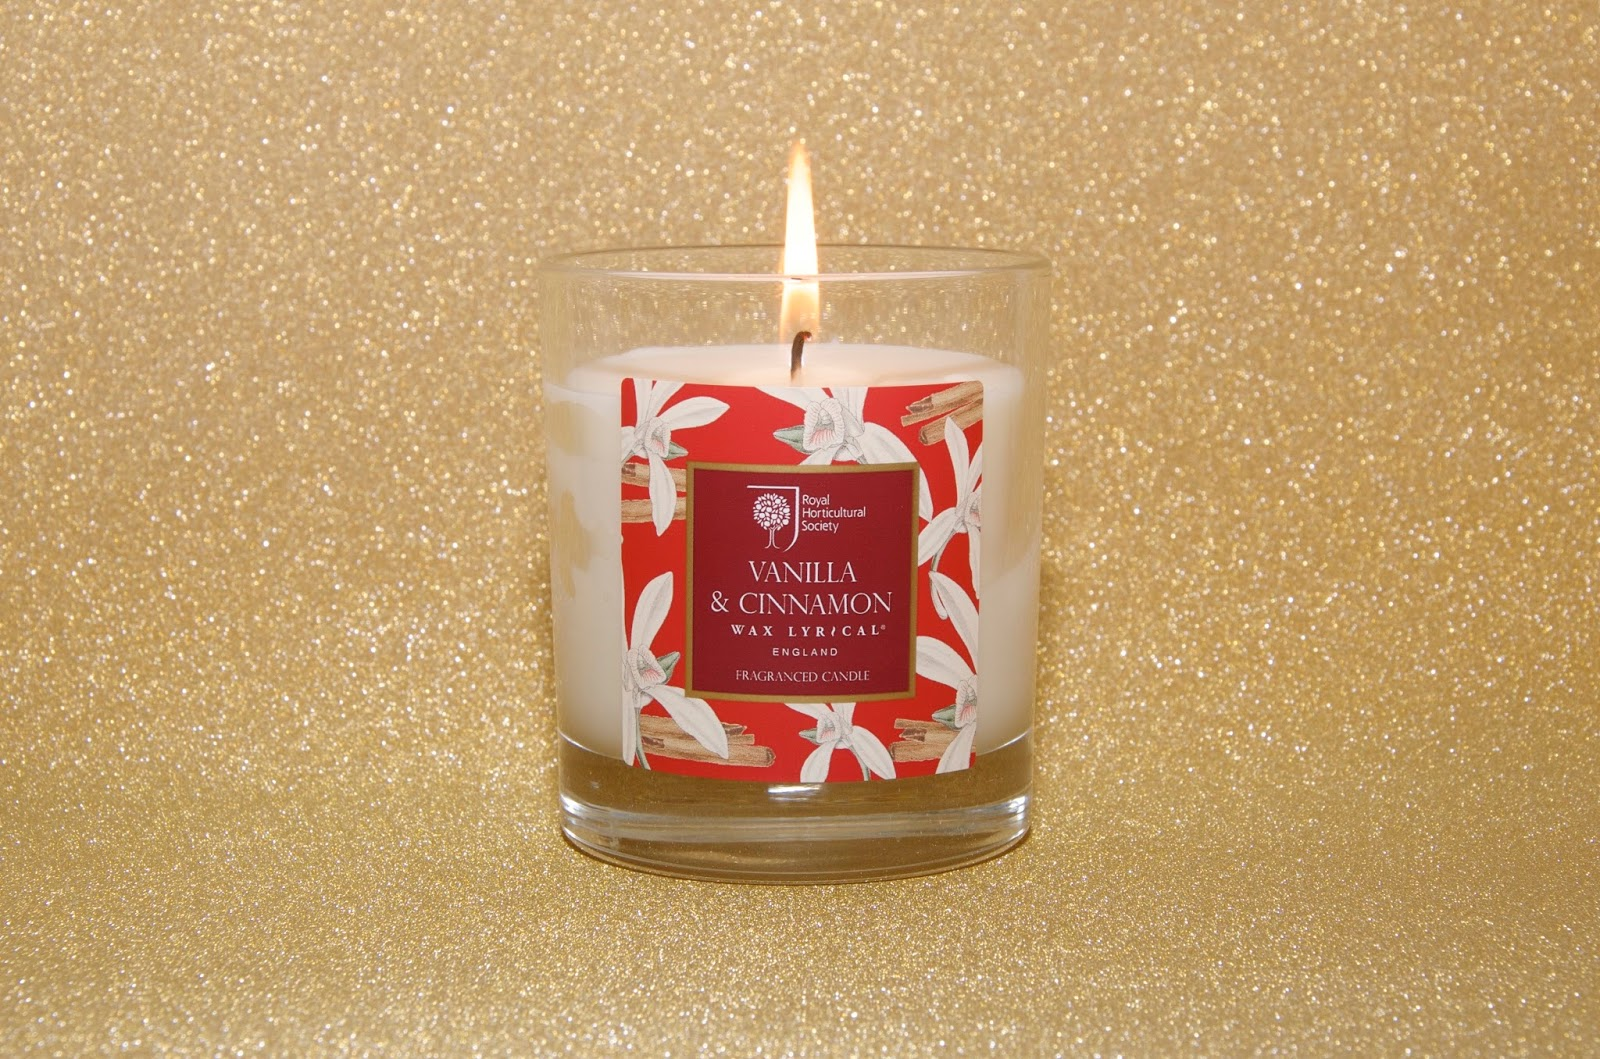 Vanilla and Cinnamon RHS Christmas Candle